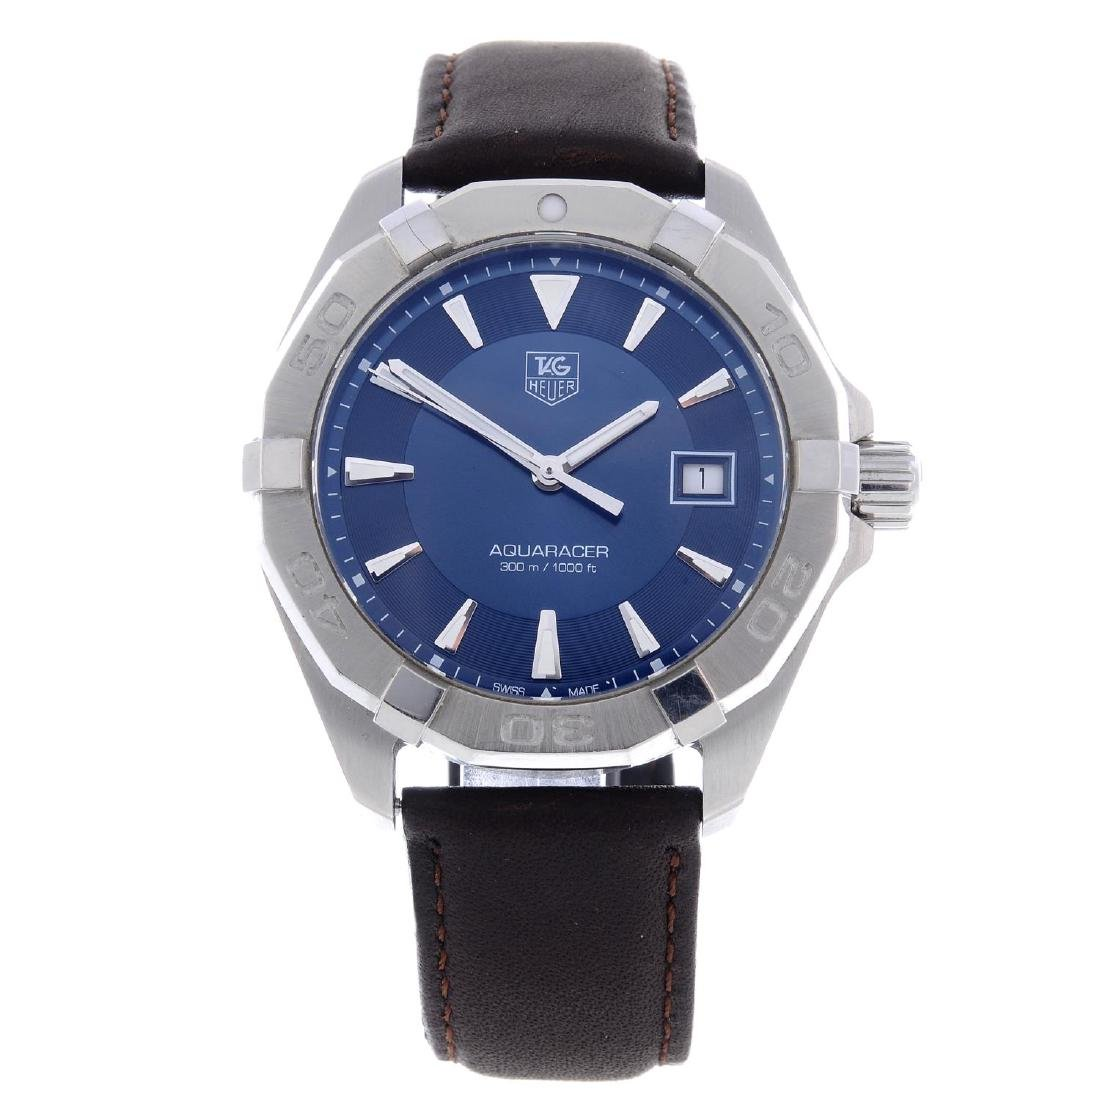 TAG HEUER - a gentleman's Aquaracer wrist watch.